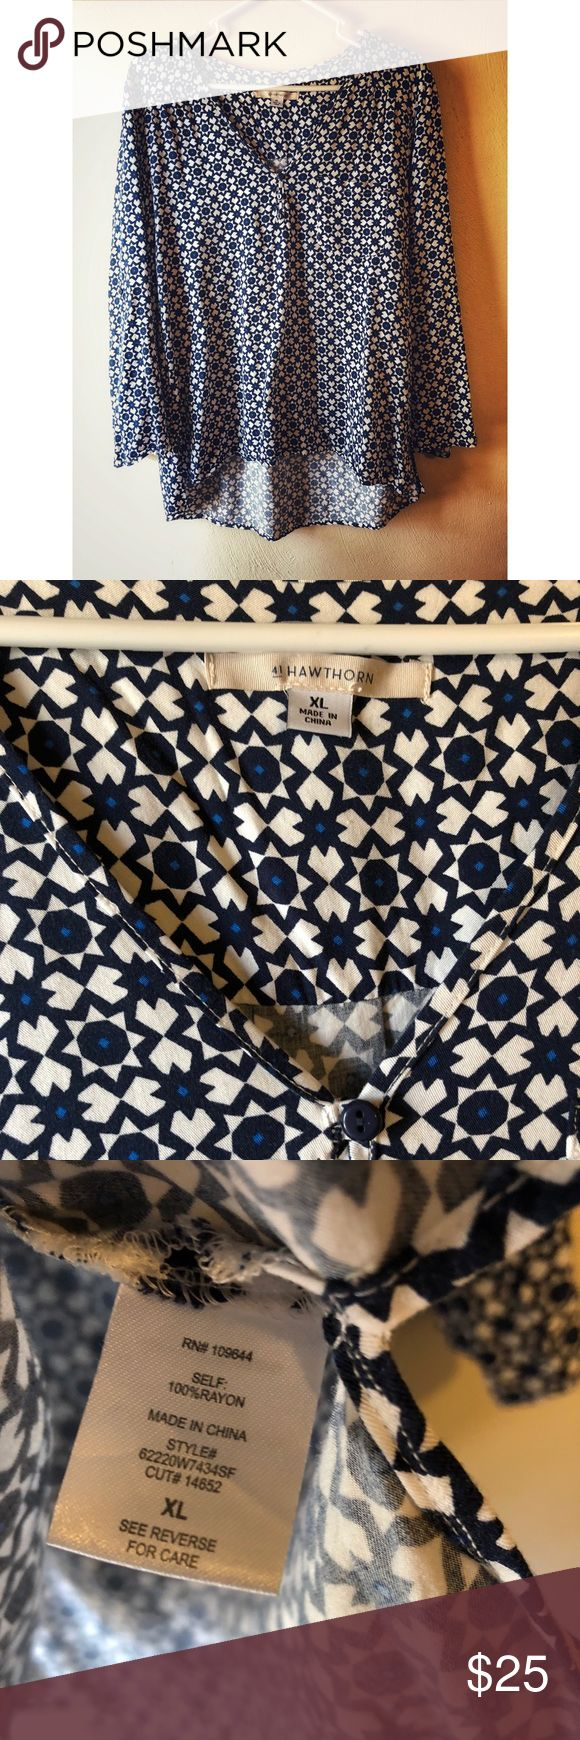 41Hawthorn Blue and White Blouse Perfect condition 41Hawthorn Tops Blouses